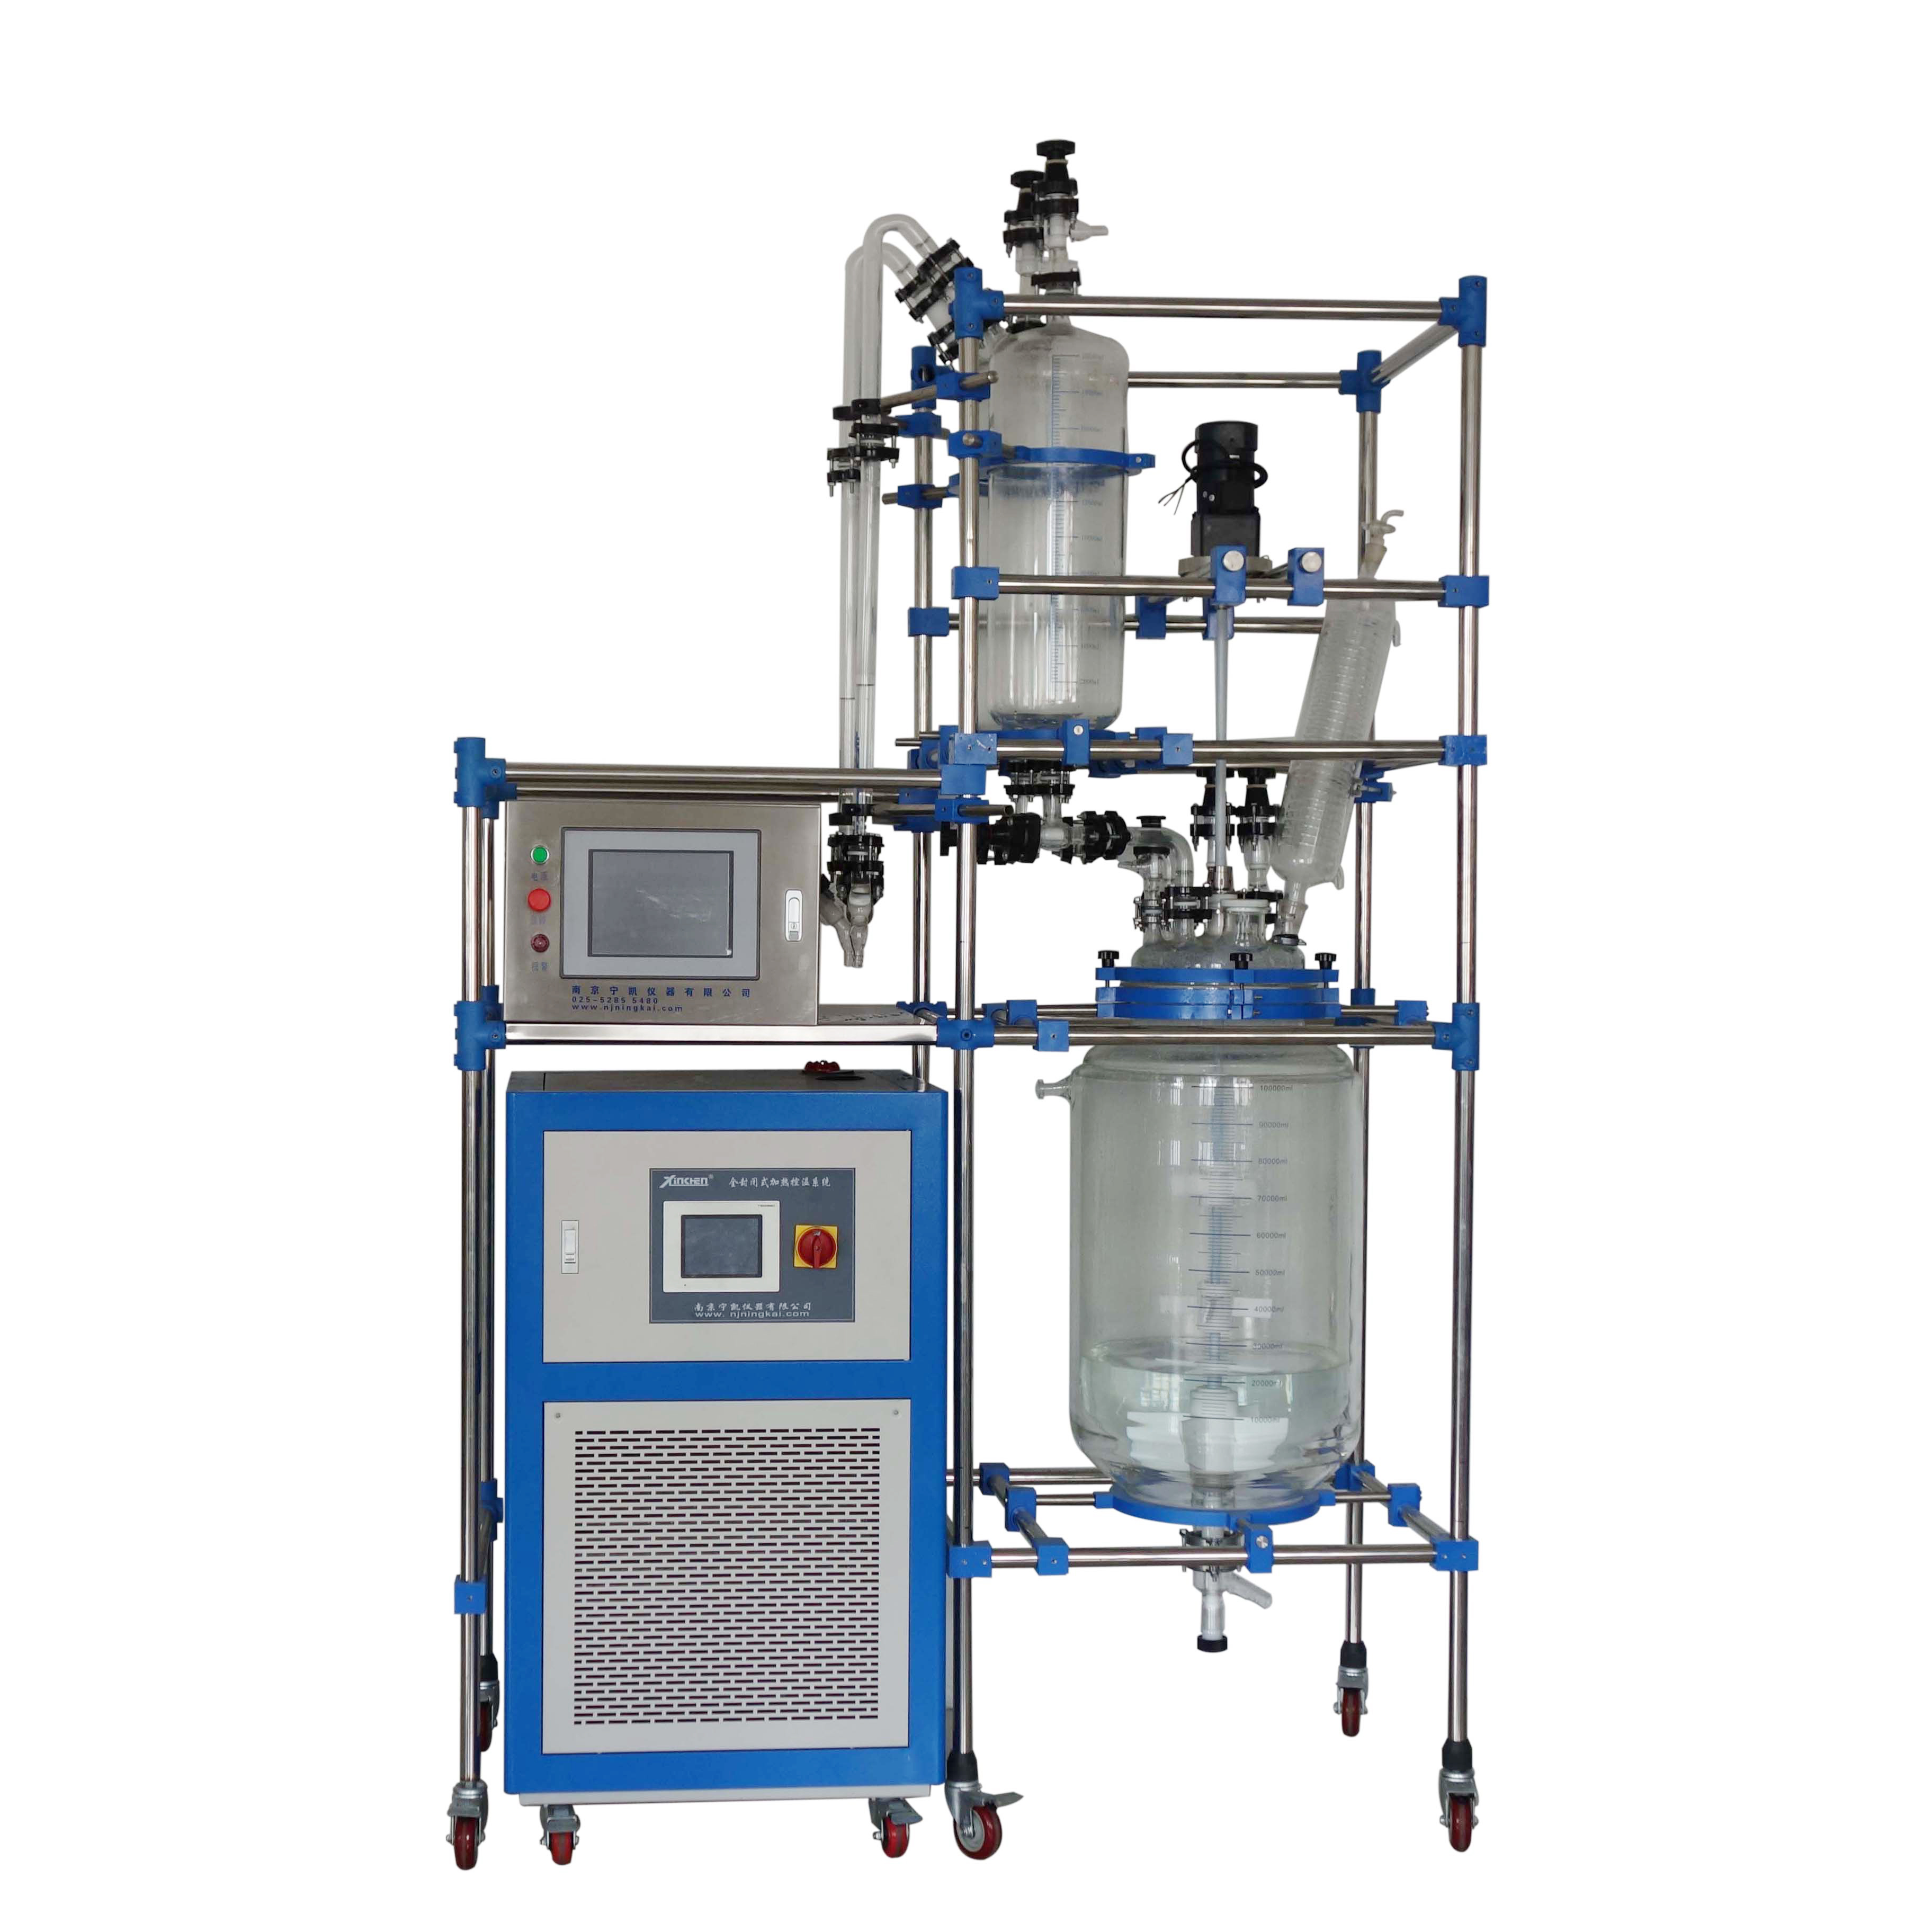 High quality 100L Jacketed glass reactor with PLC control